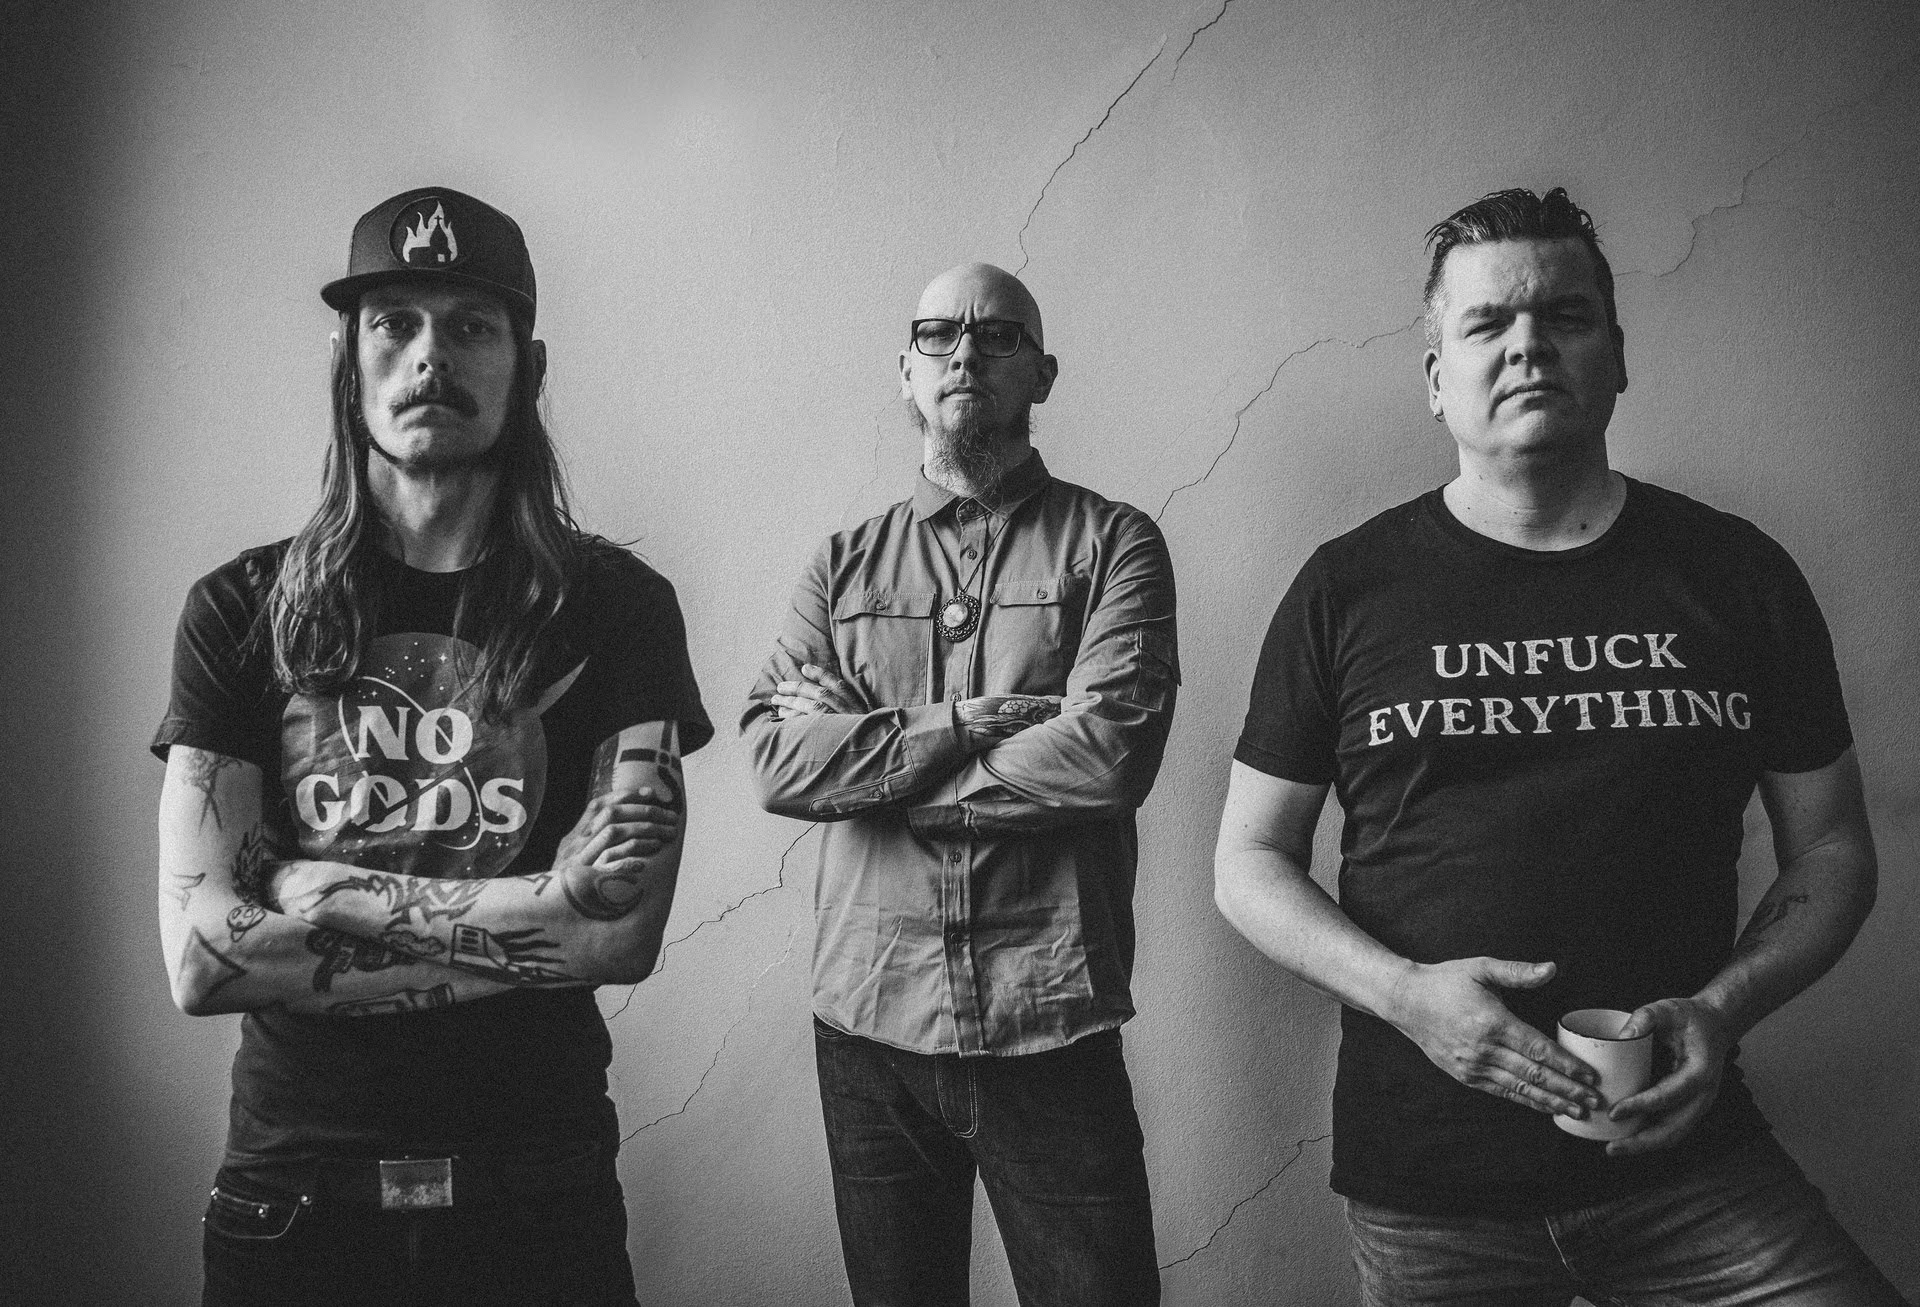 Monolord Set Release Date for New Album 'Your Time To Shine' and Announce UK and European Tour